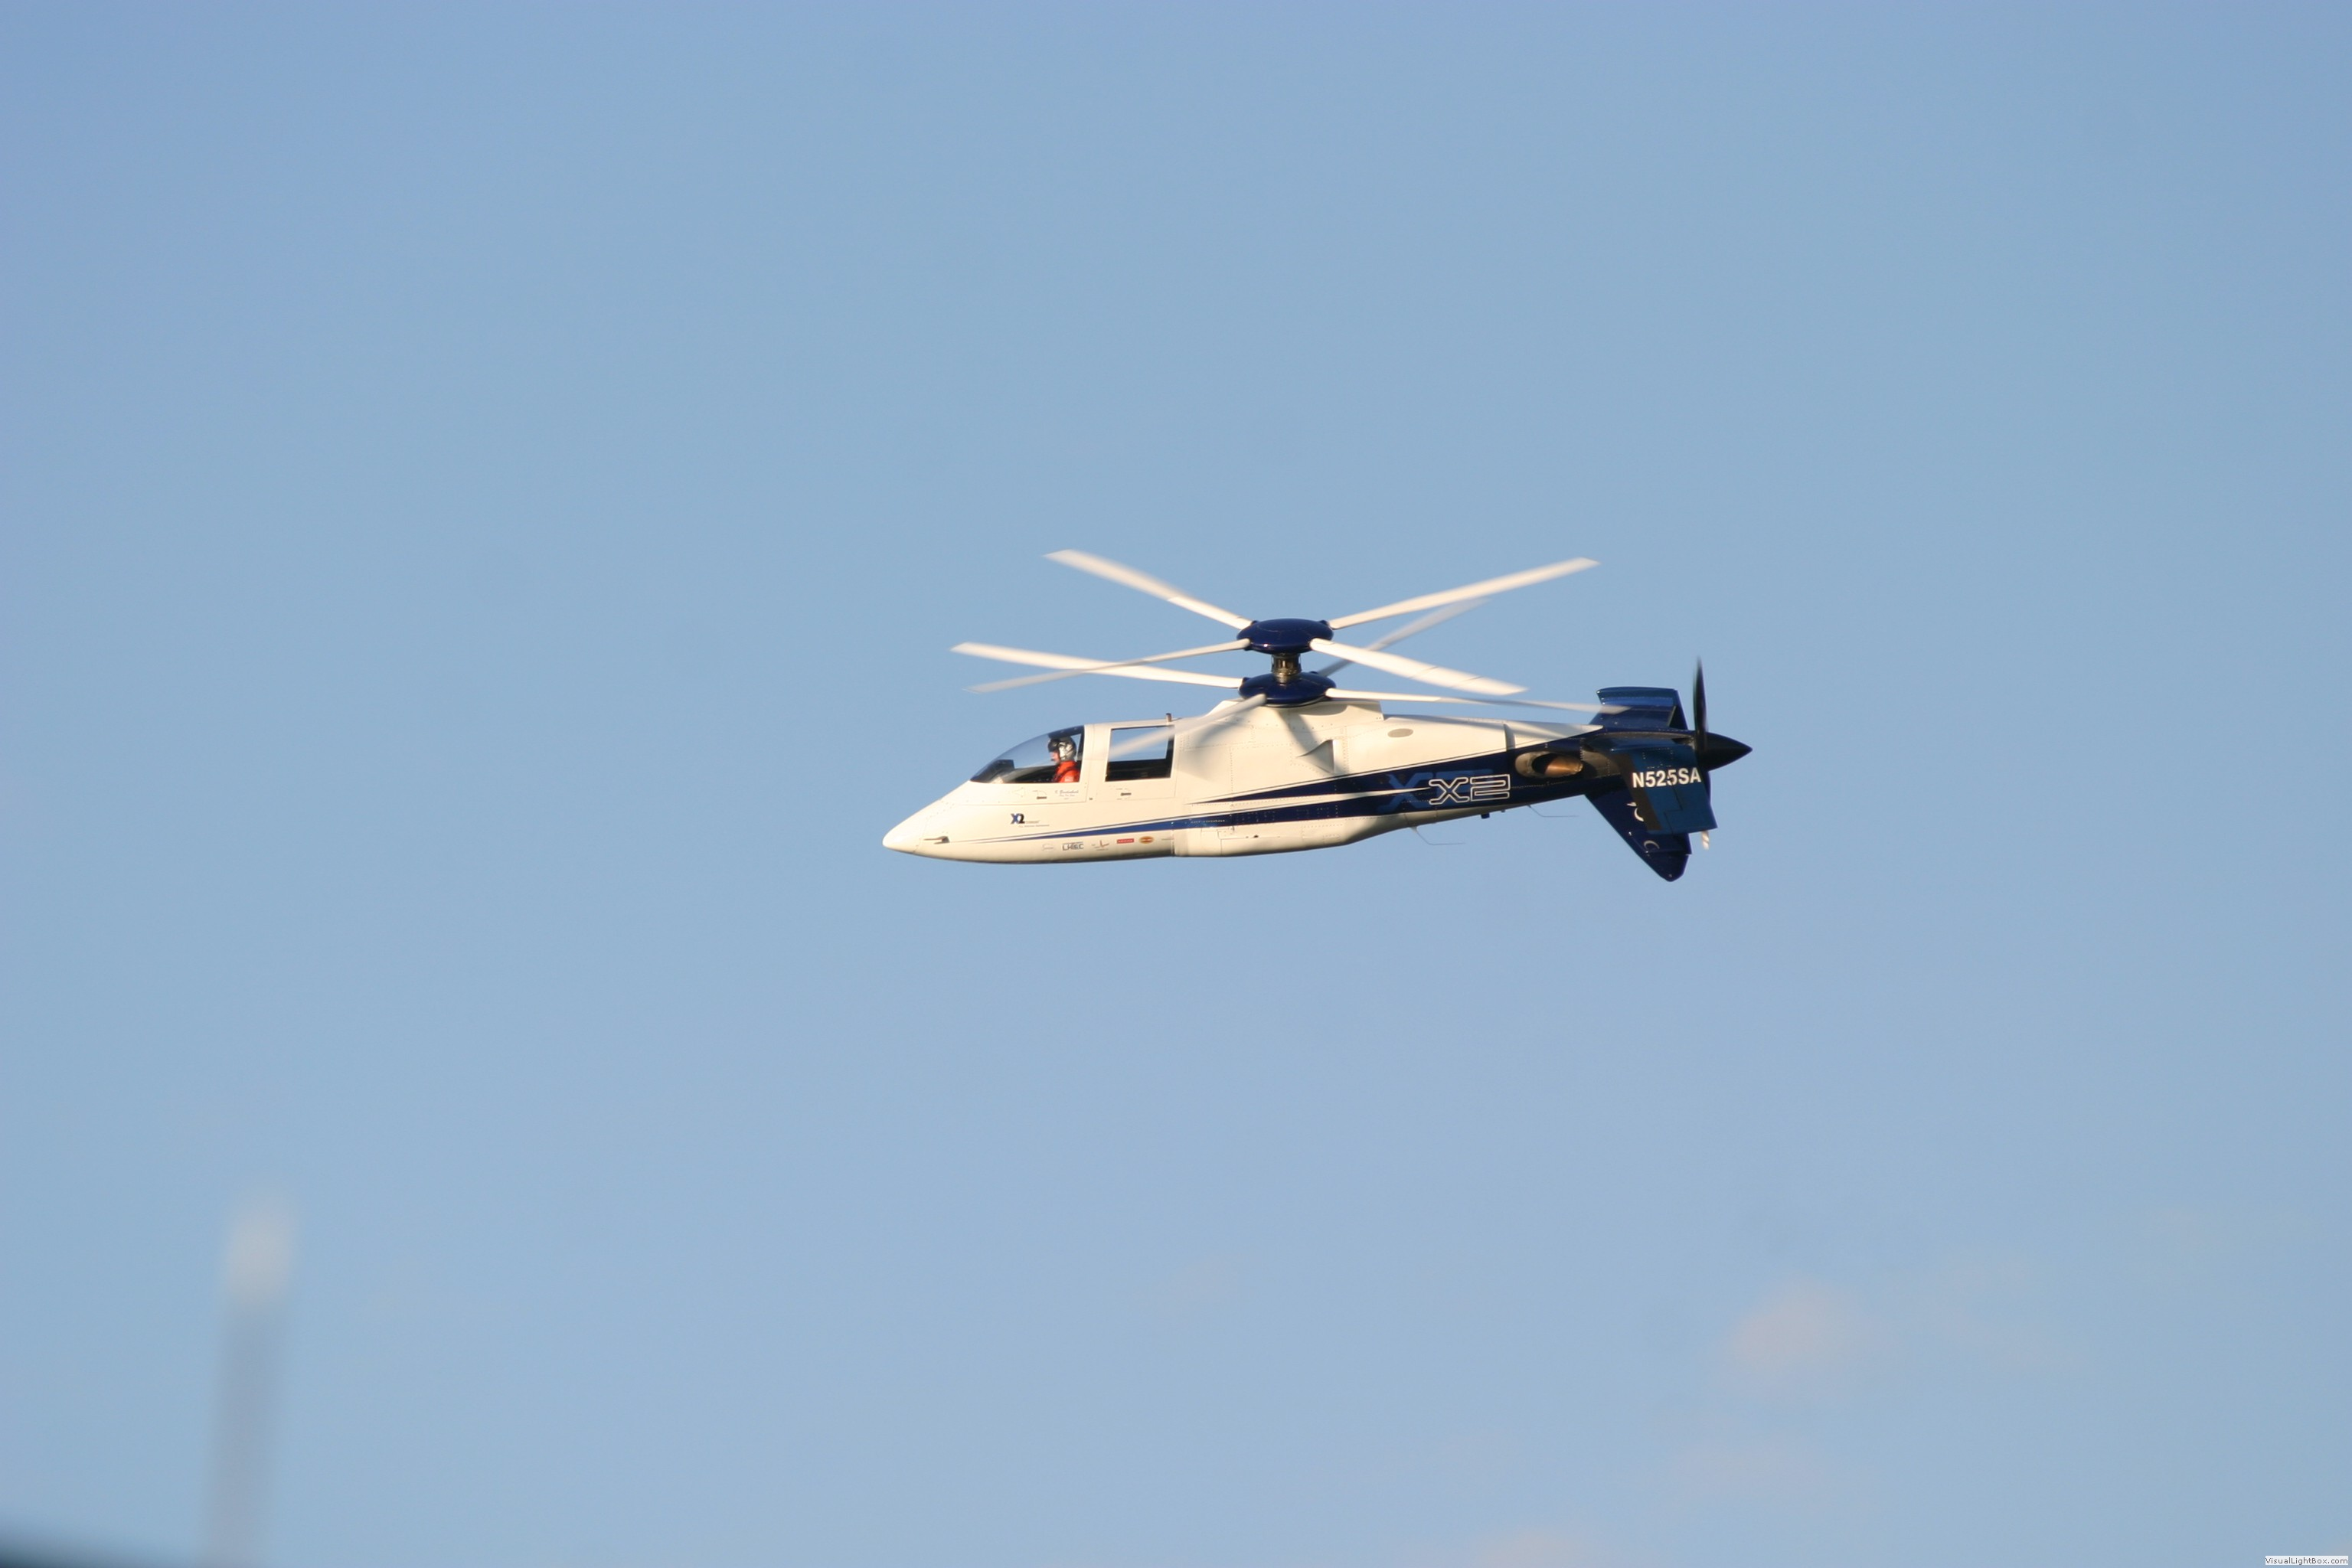 coaxial helicopter design with Sikorsky X2 on US6478641 additionally File Helicopter Bristol 171 Sycamore main gear box and rotor head additionally Rotorway A600 T furthermore Acdata ka50 en as well Vsr700 ff.